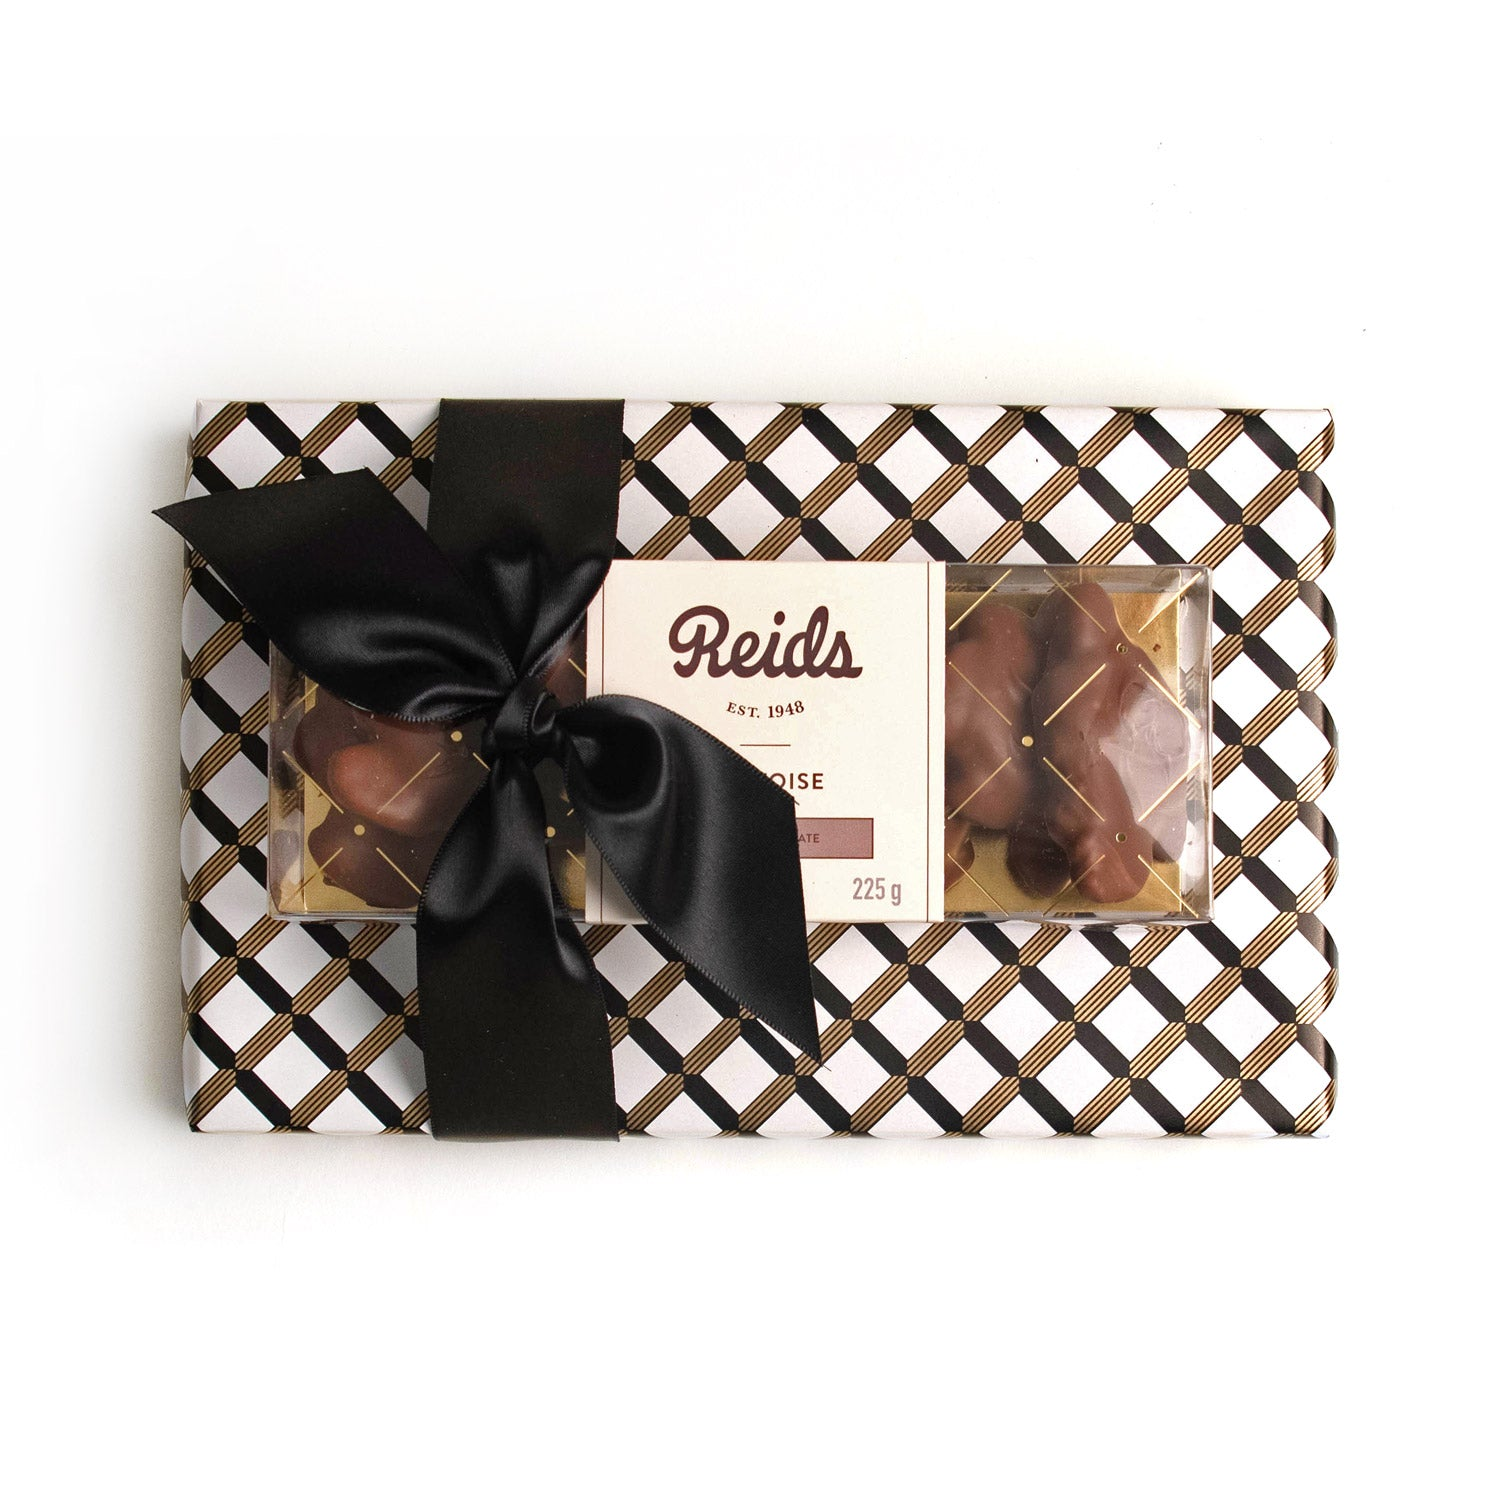 Product photo of double treat. Black, gold and white wrapping paper. Tied with a satin black ribbon